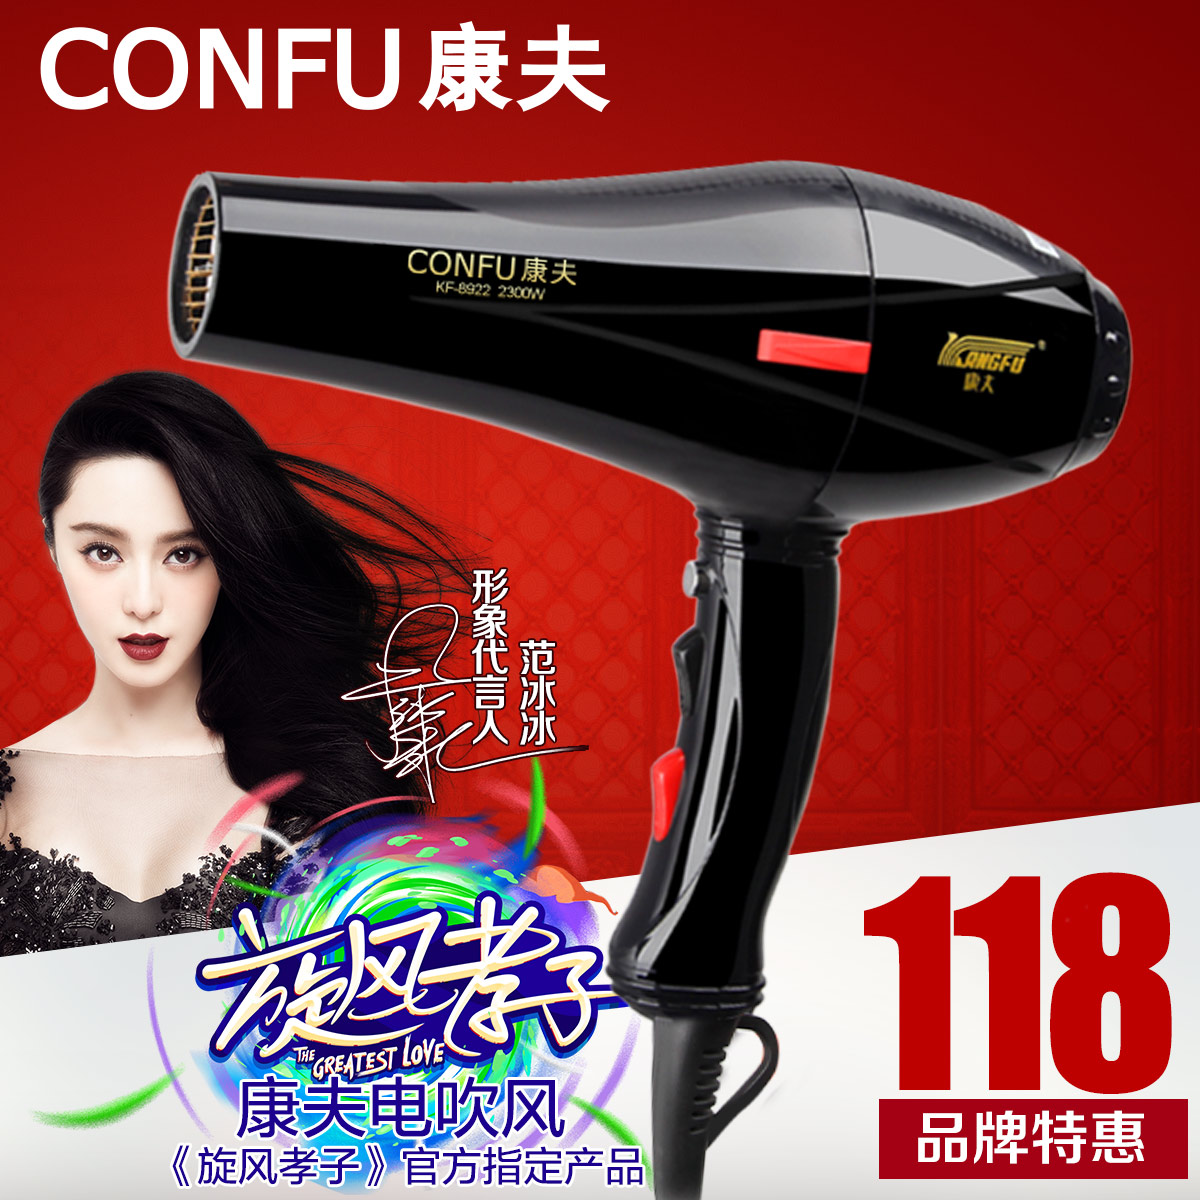 Genuine yasuo yasuo kf-8922 dedicated salon hair dryer hair dryer power hair dryer hair dryer cold wind